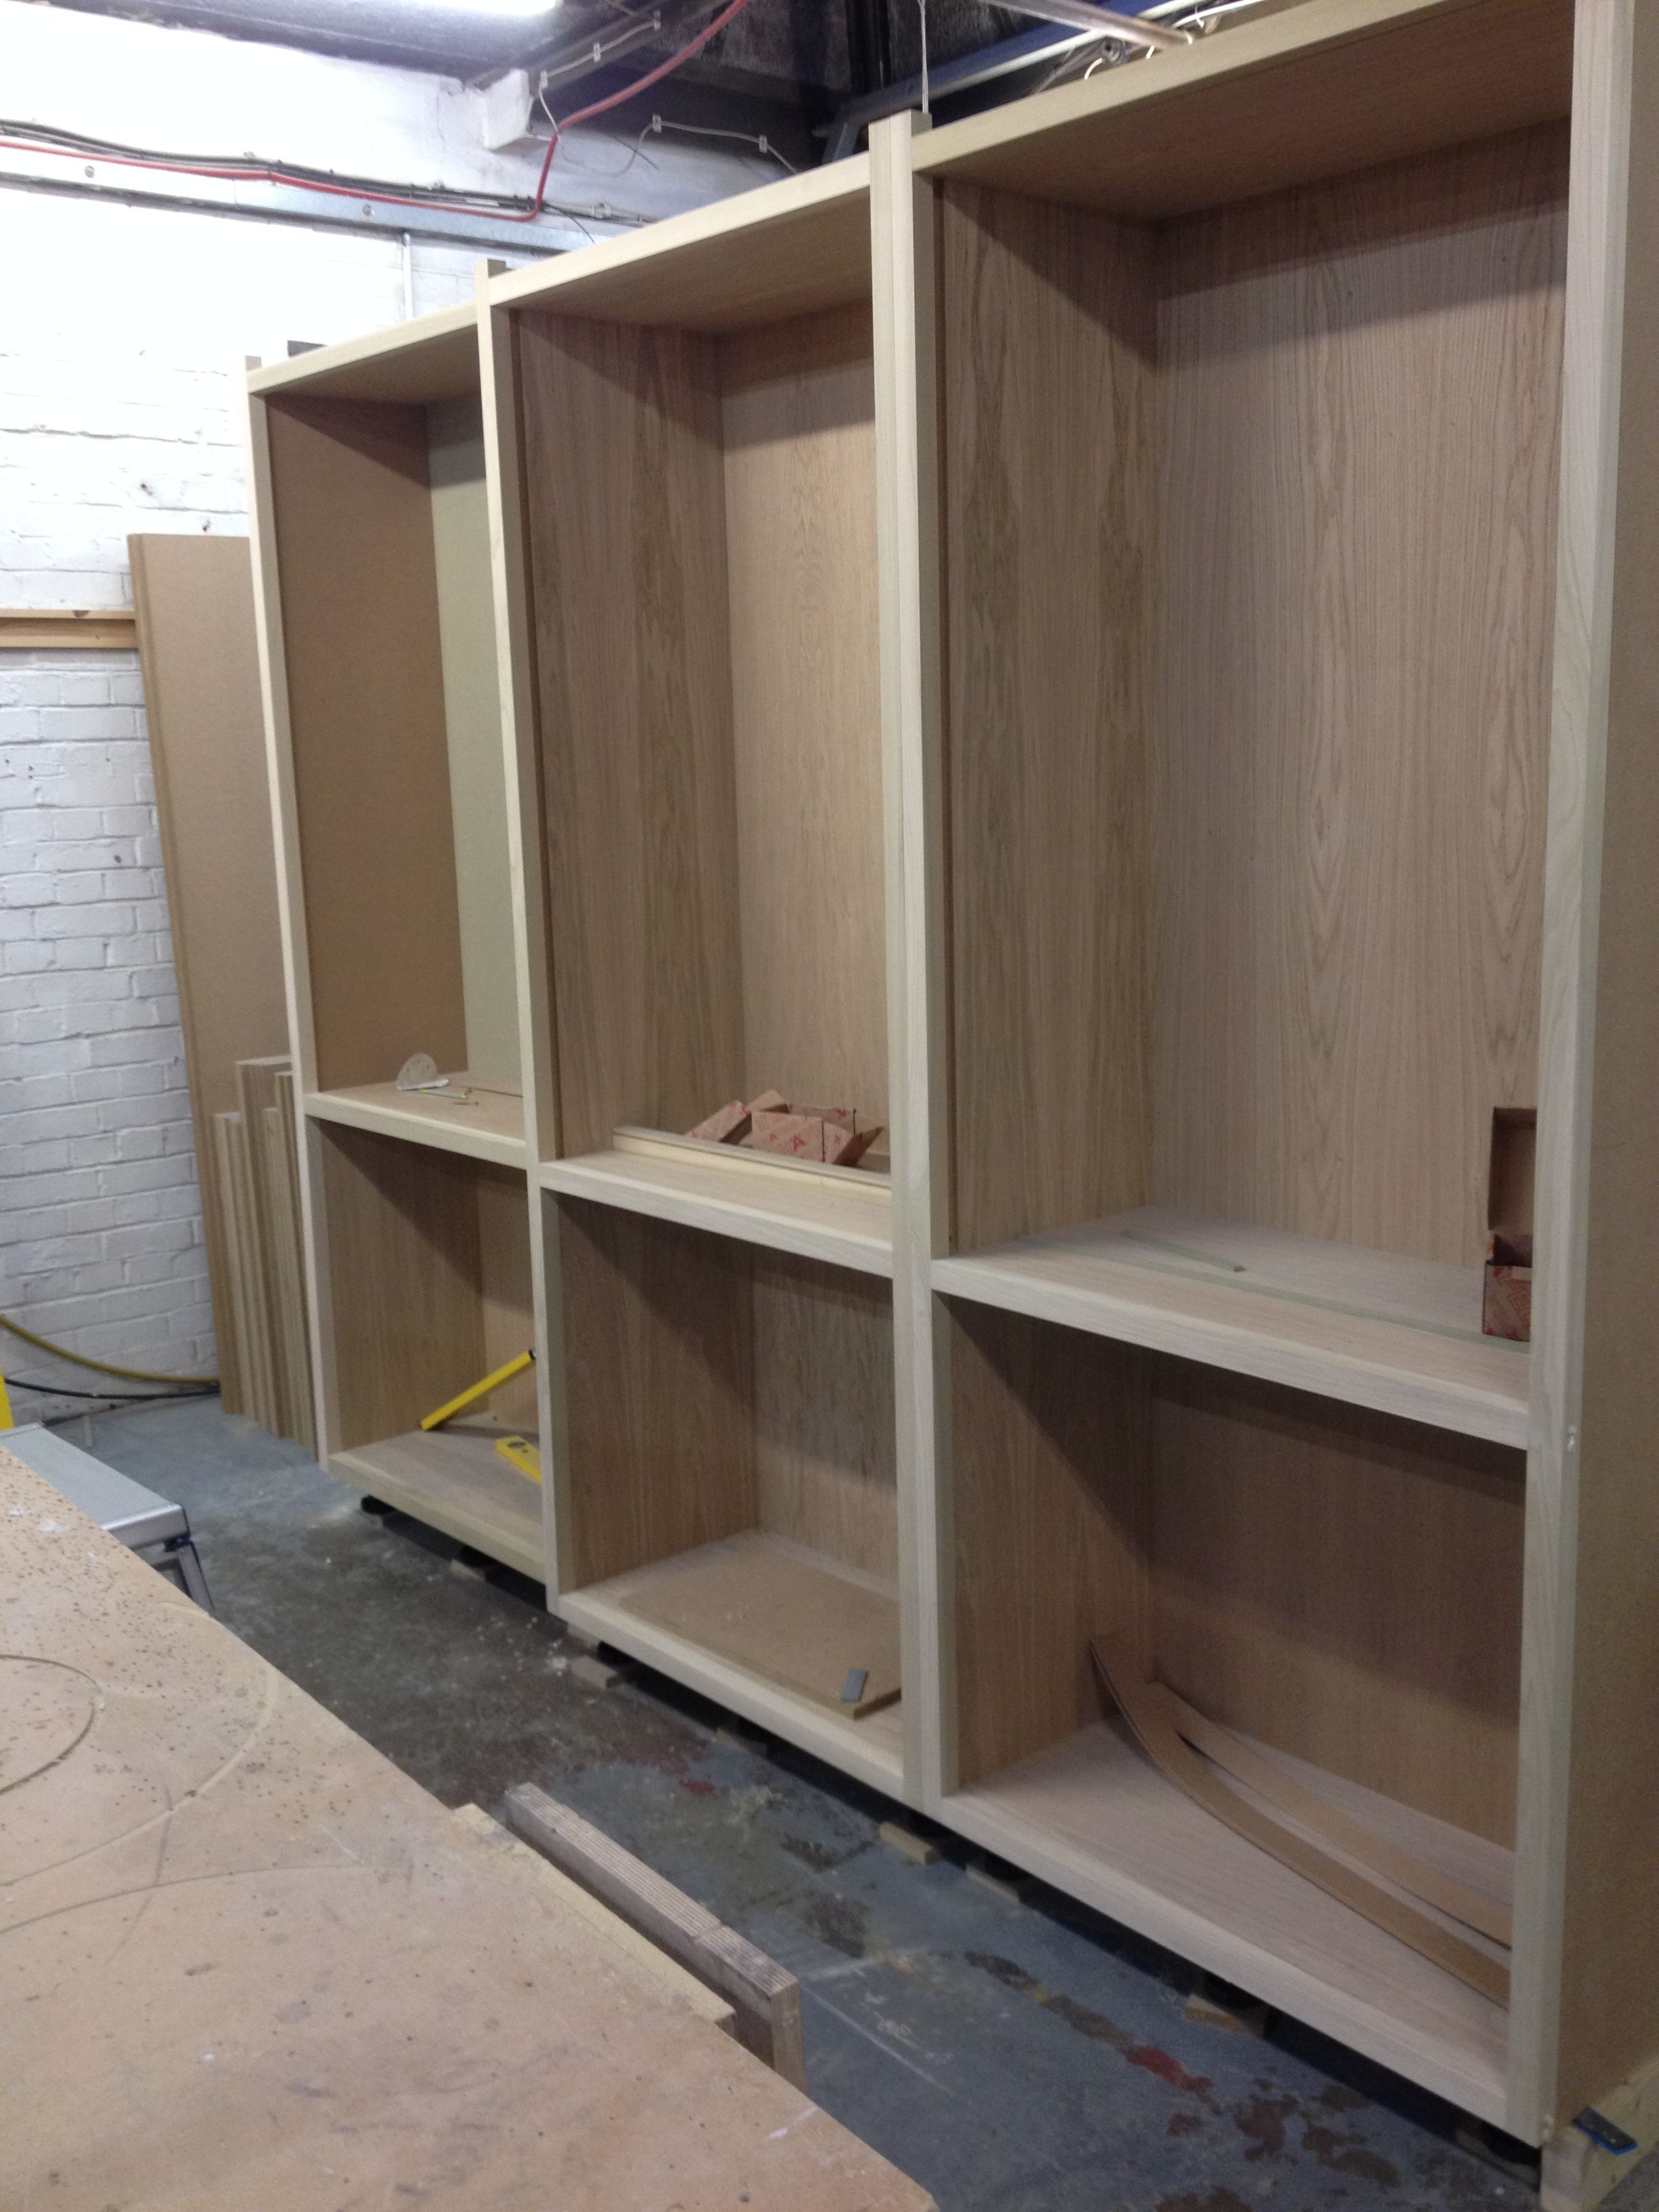 Oak Veneered Carcasses For Larder Cupboards Timber Frames Ready For Doors To Be Hung Interior Furniture Joinery Larder Cupboard